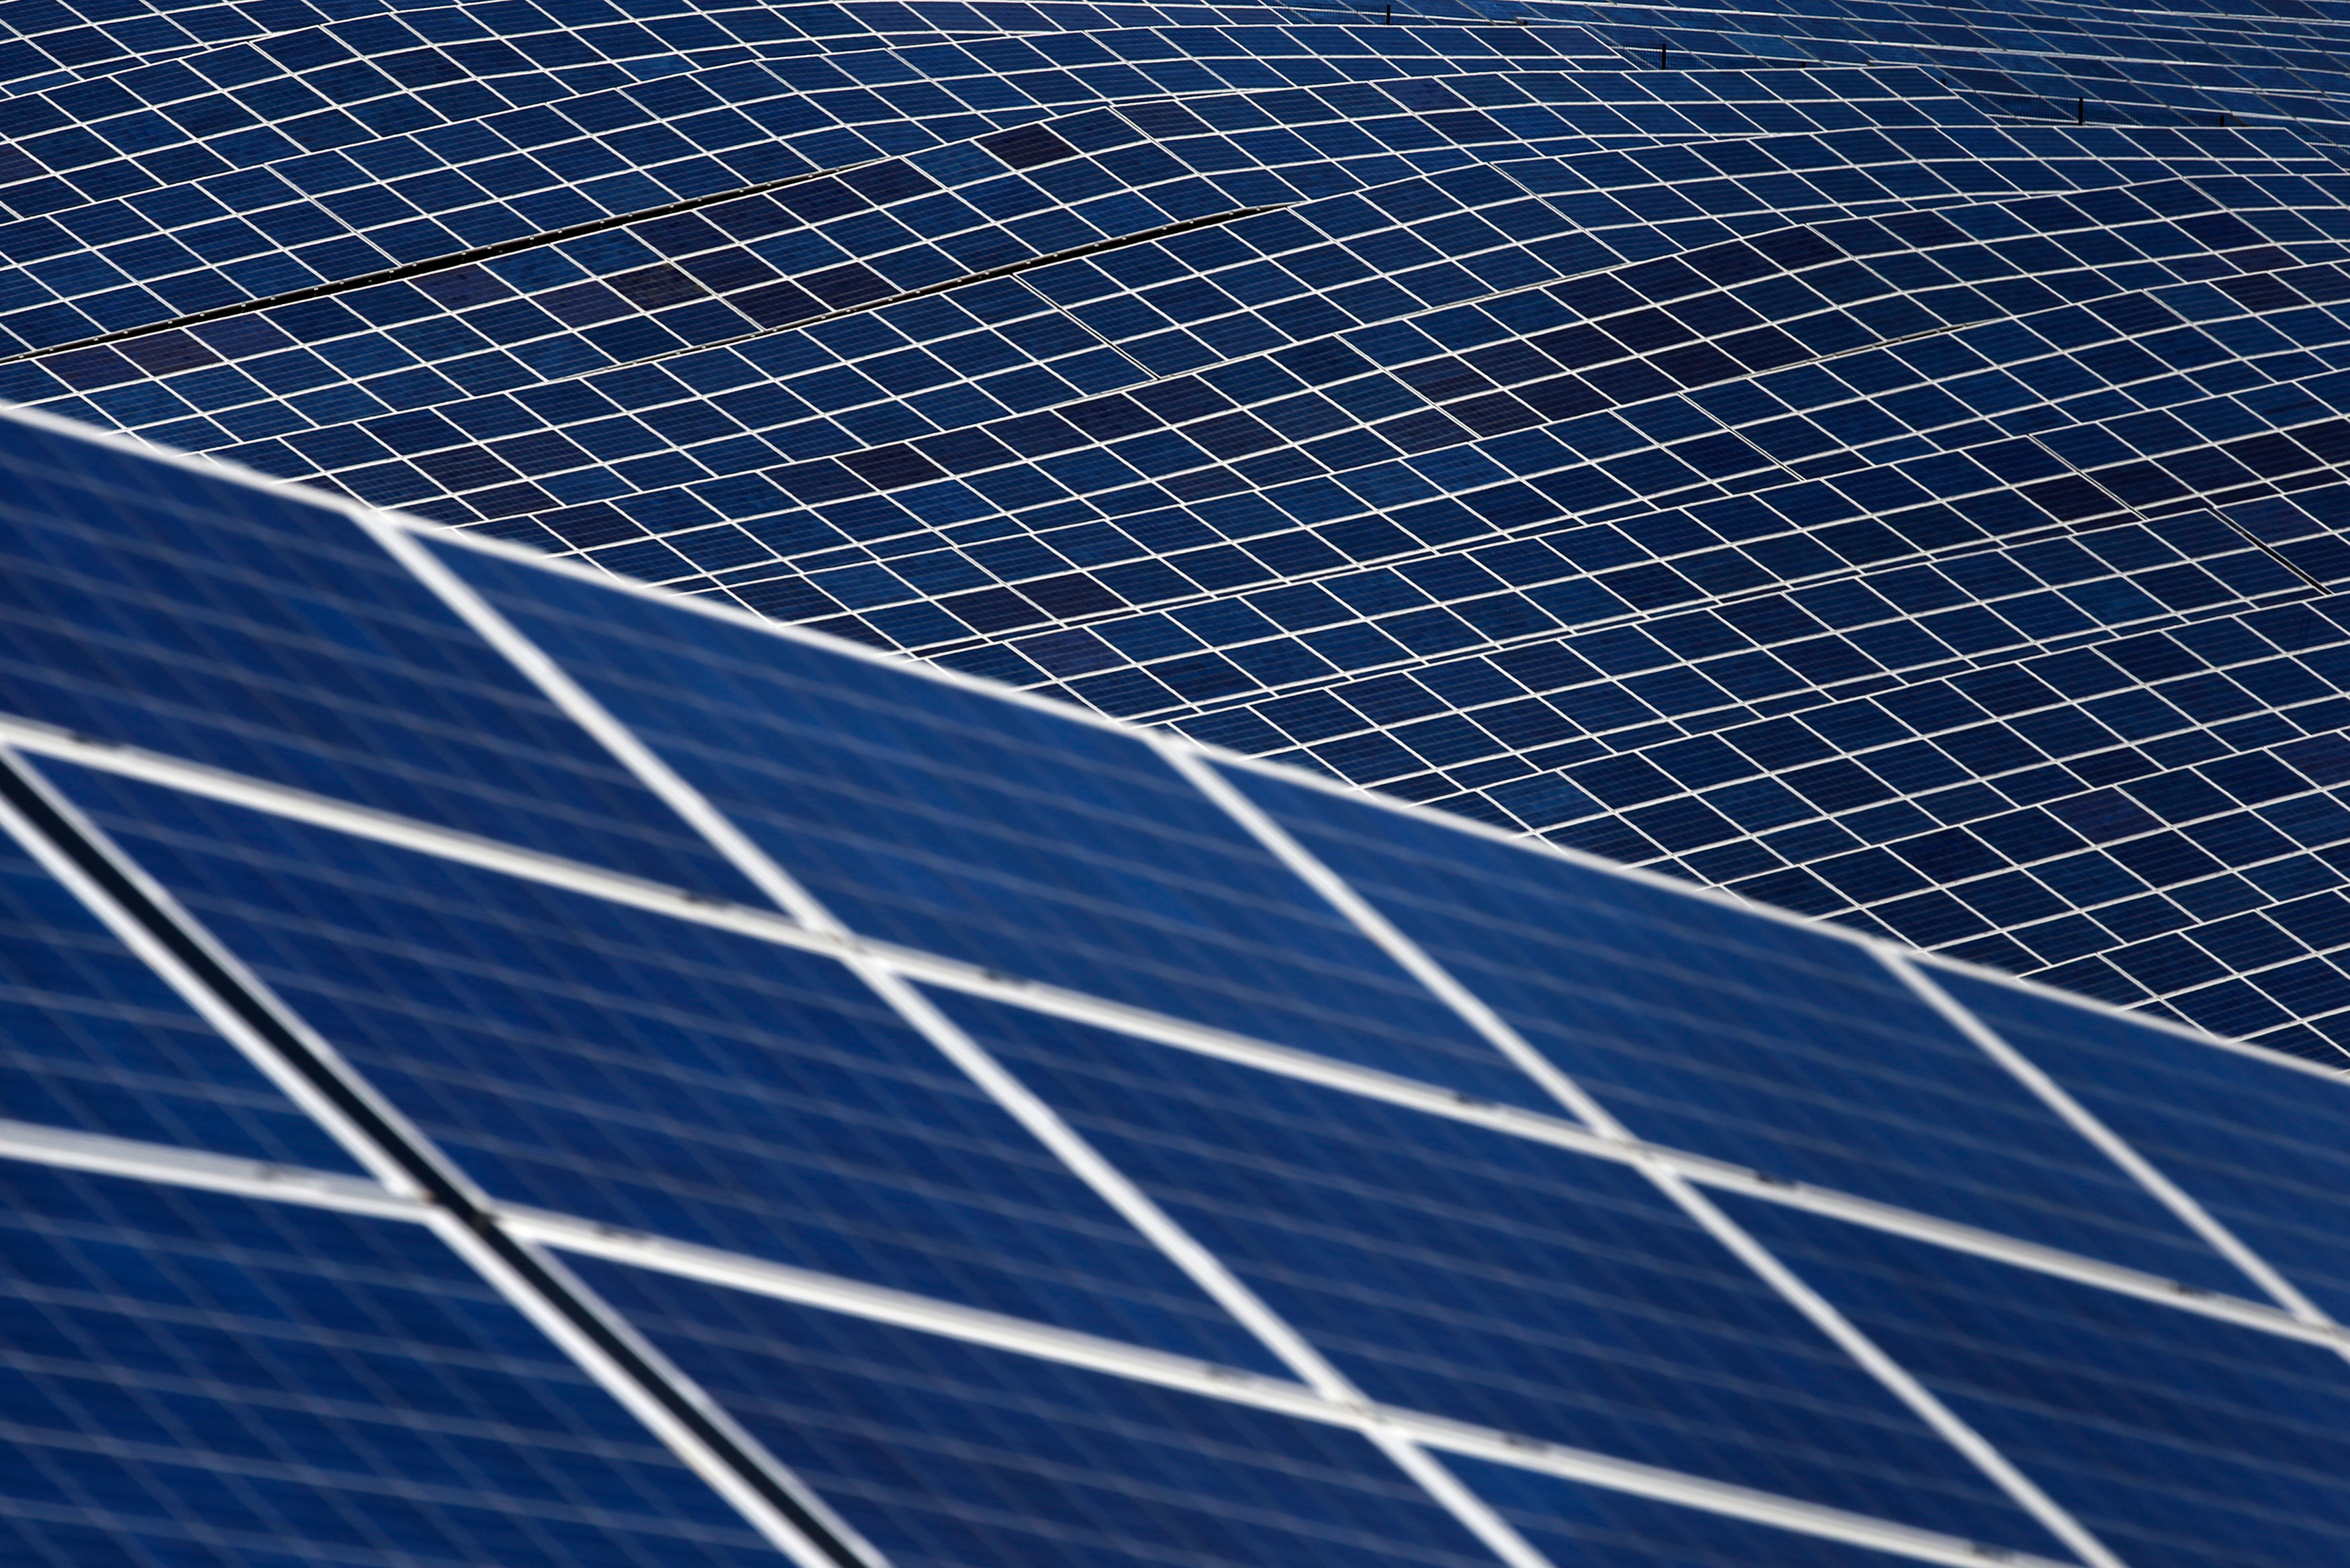 Government raises solar power capacity target five times to 100 GW by 2022